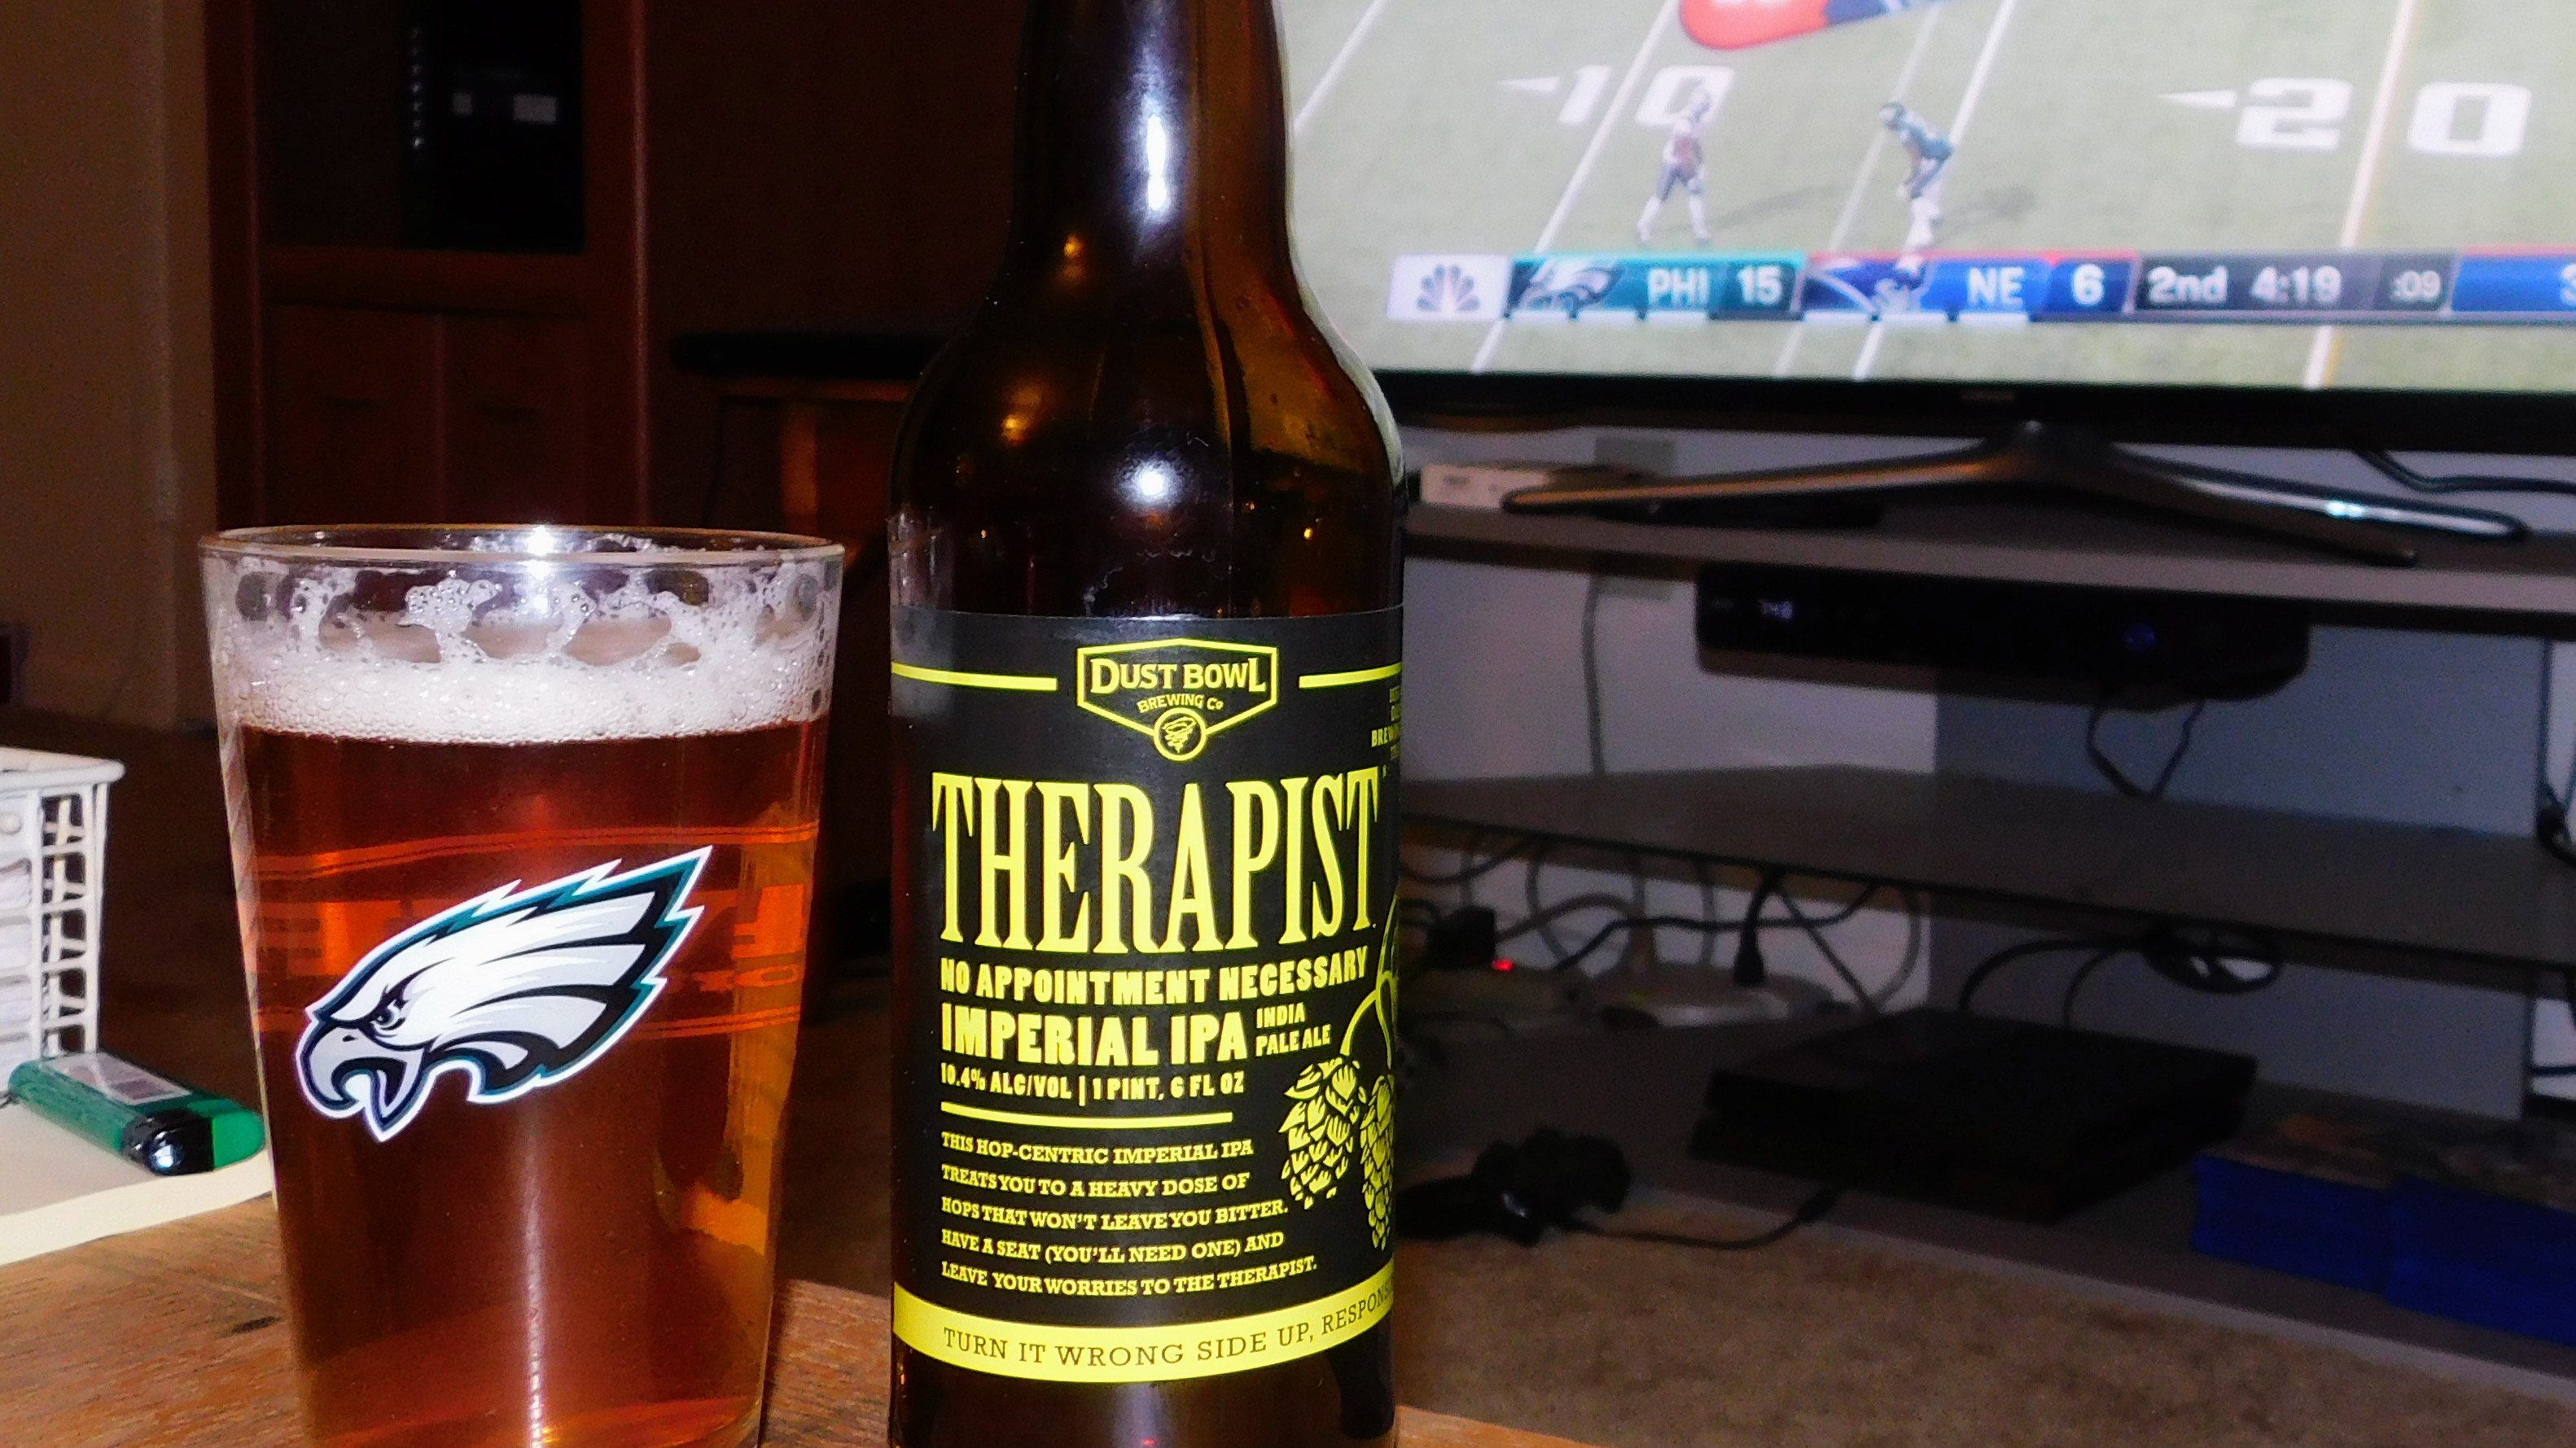 Review: Therapist by Dust Bowl Brewing Company   The Craft